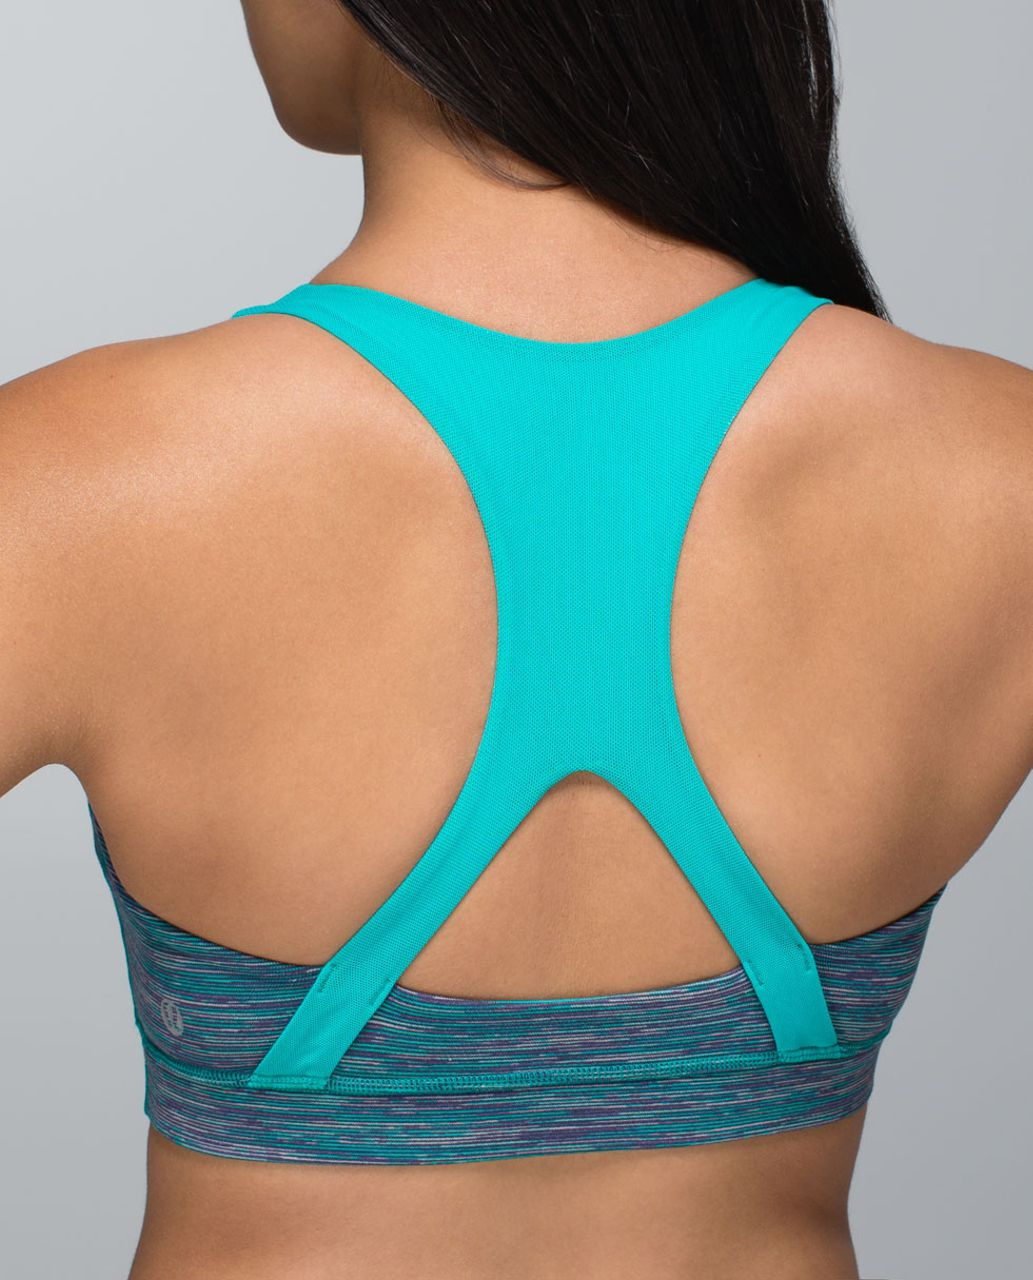 Lululemon 50 Rep Bra - Wee Are From Space Blue Tropics / Blue Tropics